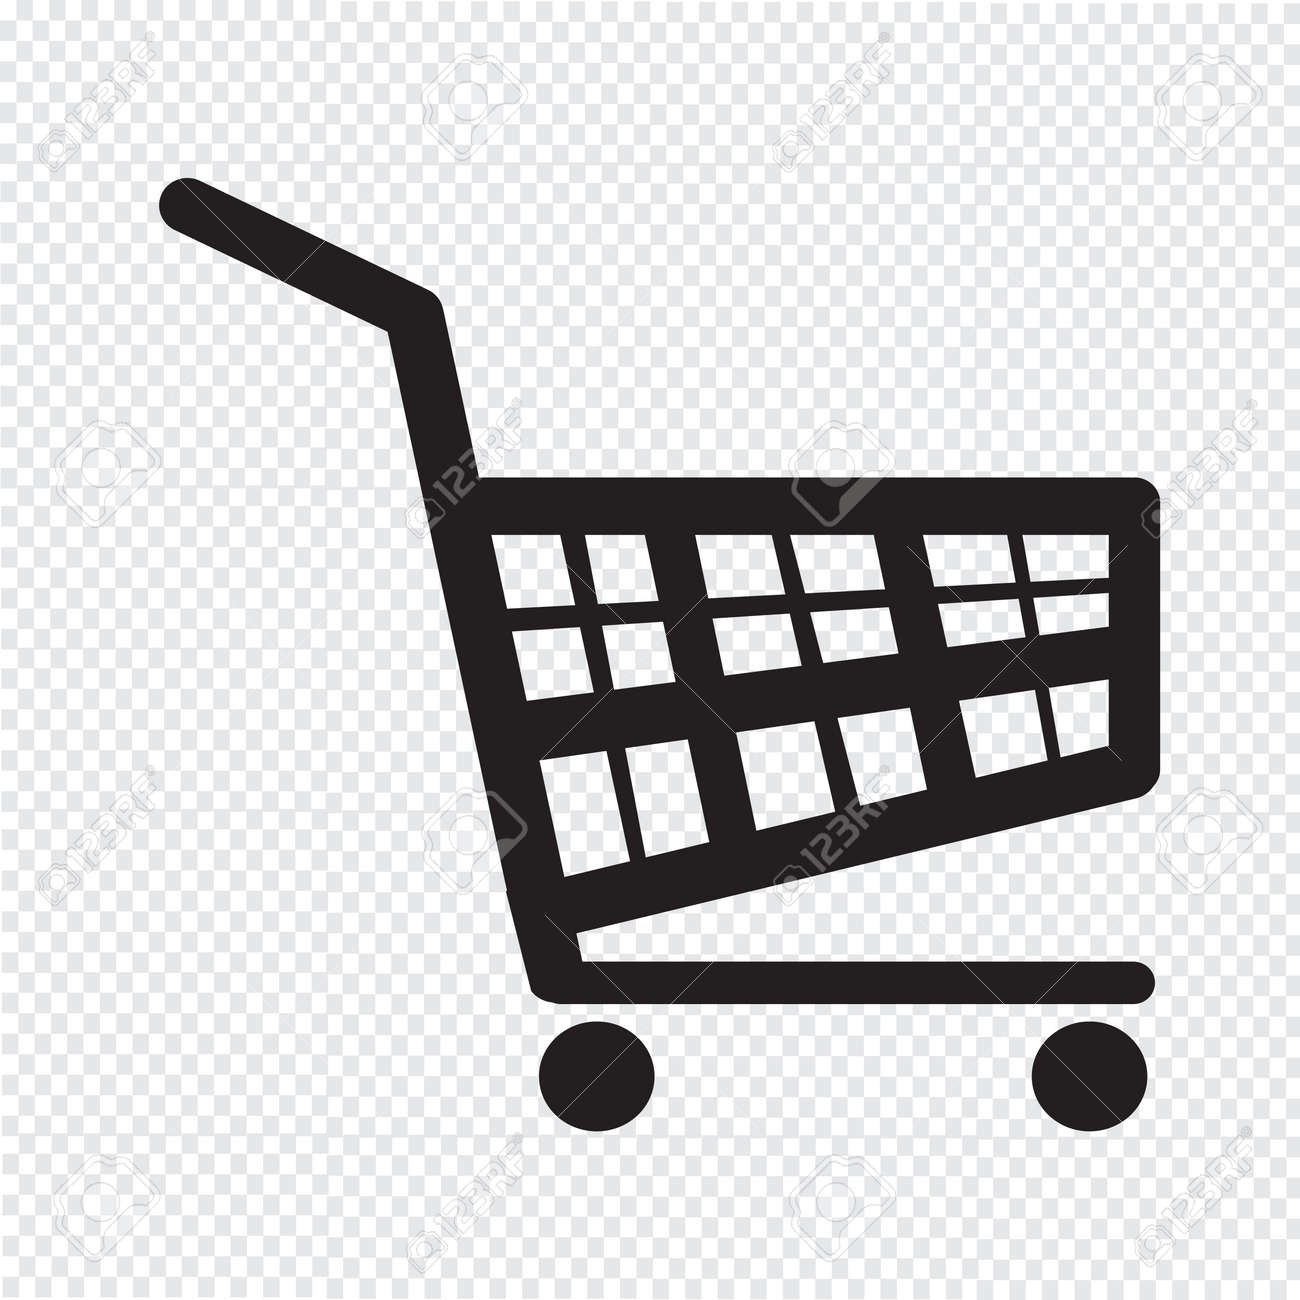 shopping cart icon royalty free cliparts vectors and stock